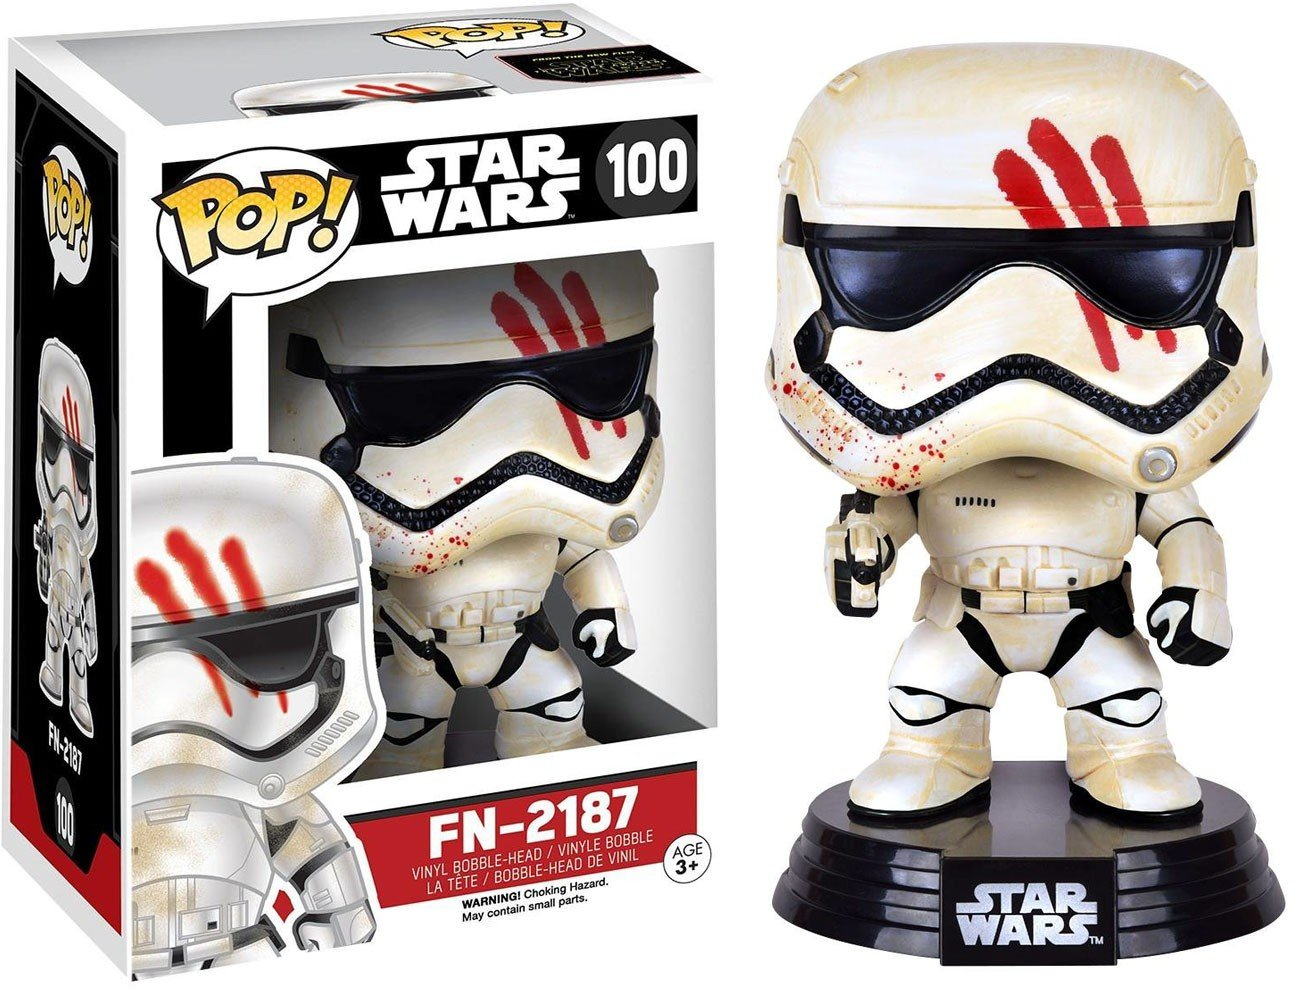 Star Wars 100 - FN-2187: Toys & Games